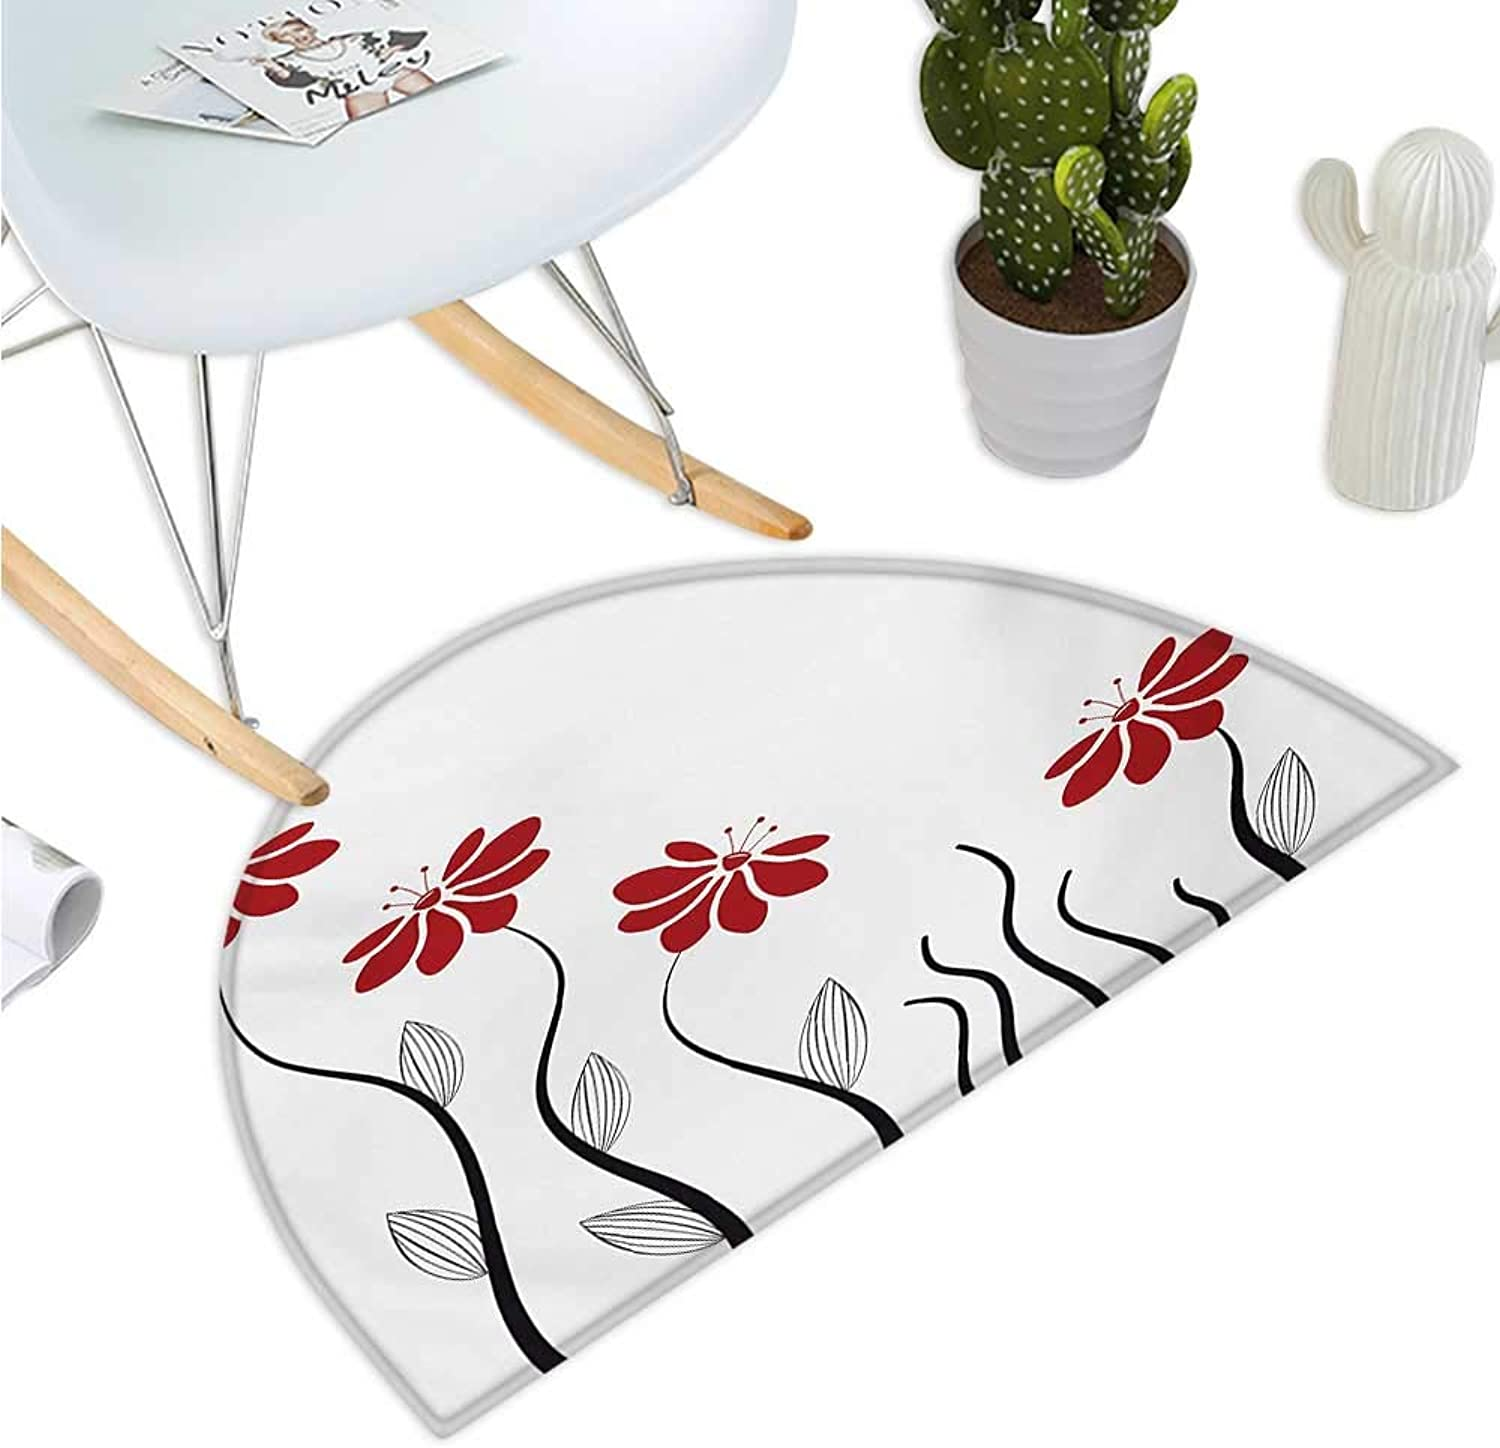 Flower Semicircle Doormat Floral Petals with Striped Leaves and Lines Modern Style Geometrical Design Print Entry Door Mat H 35.4  xD 53.1  Red and Black